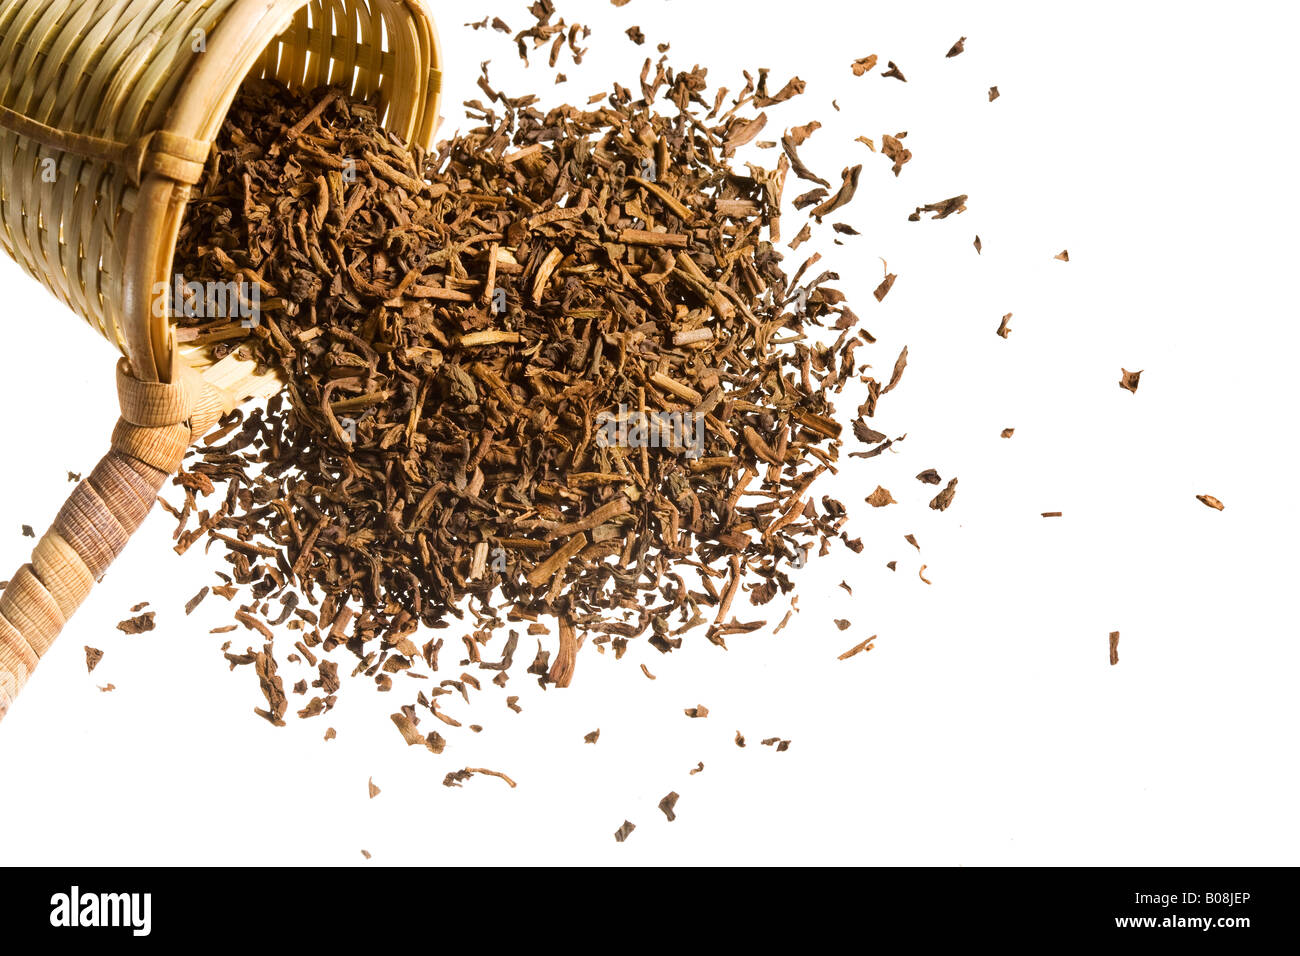 An overflowing heap of raw tea spills out of a woven scooper. - Stock Image